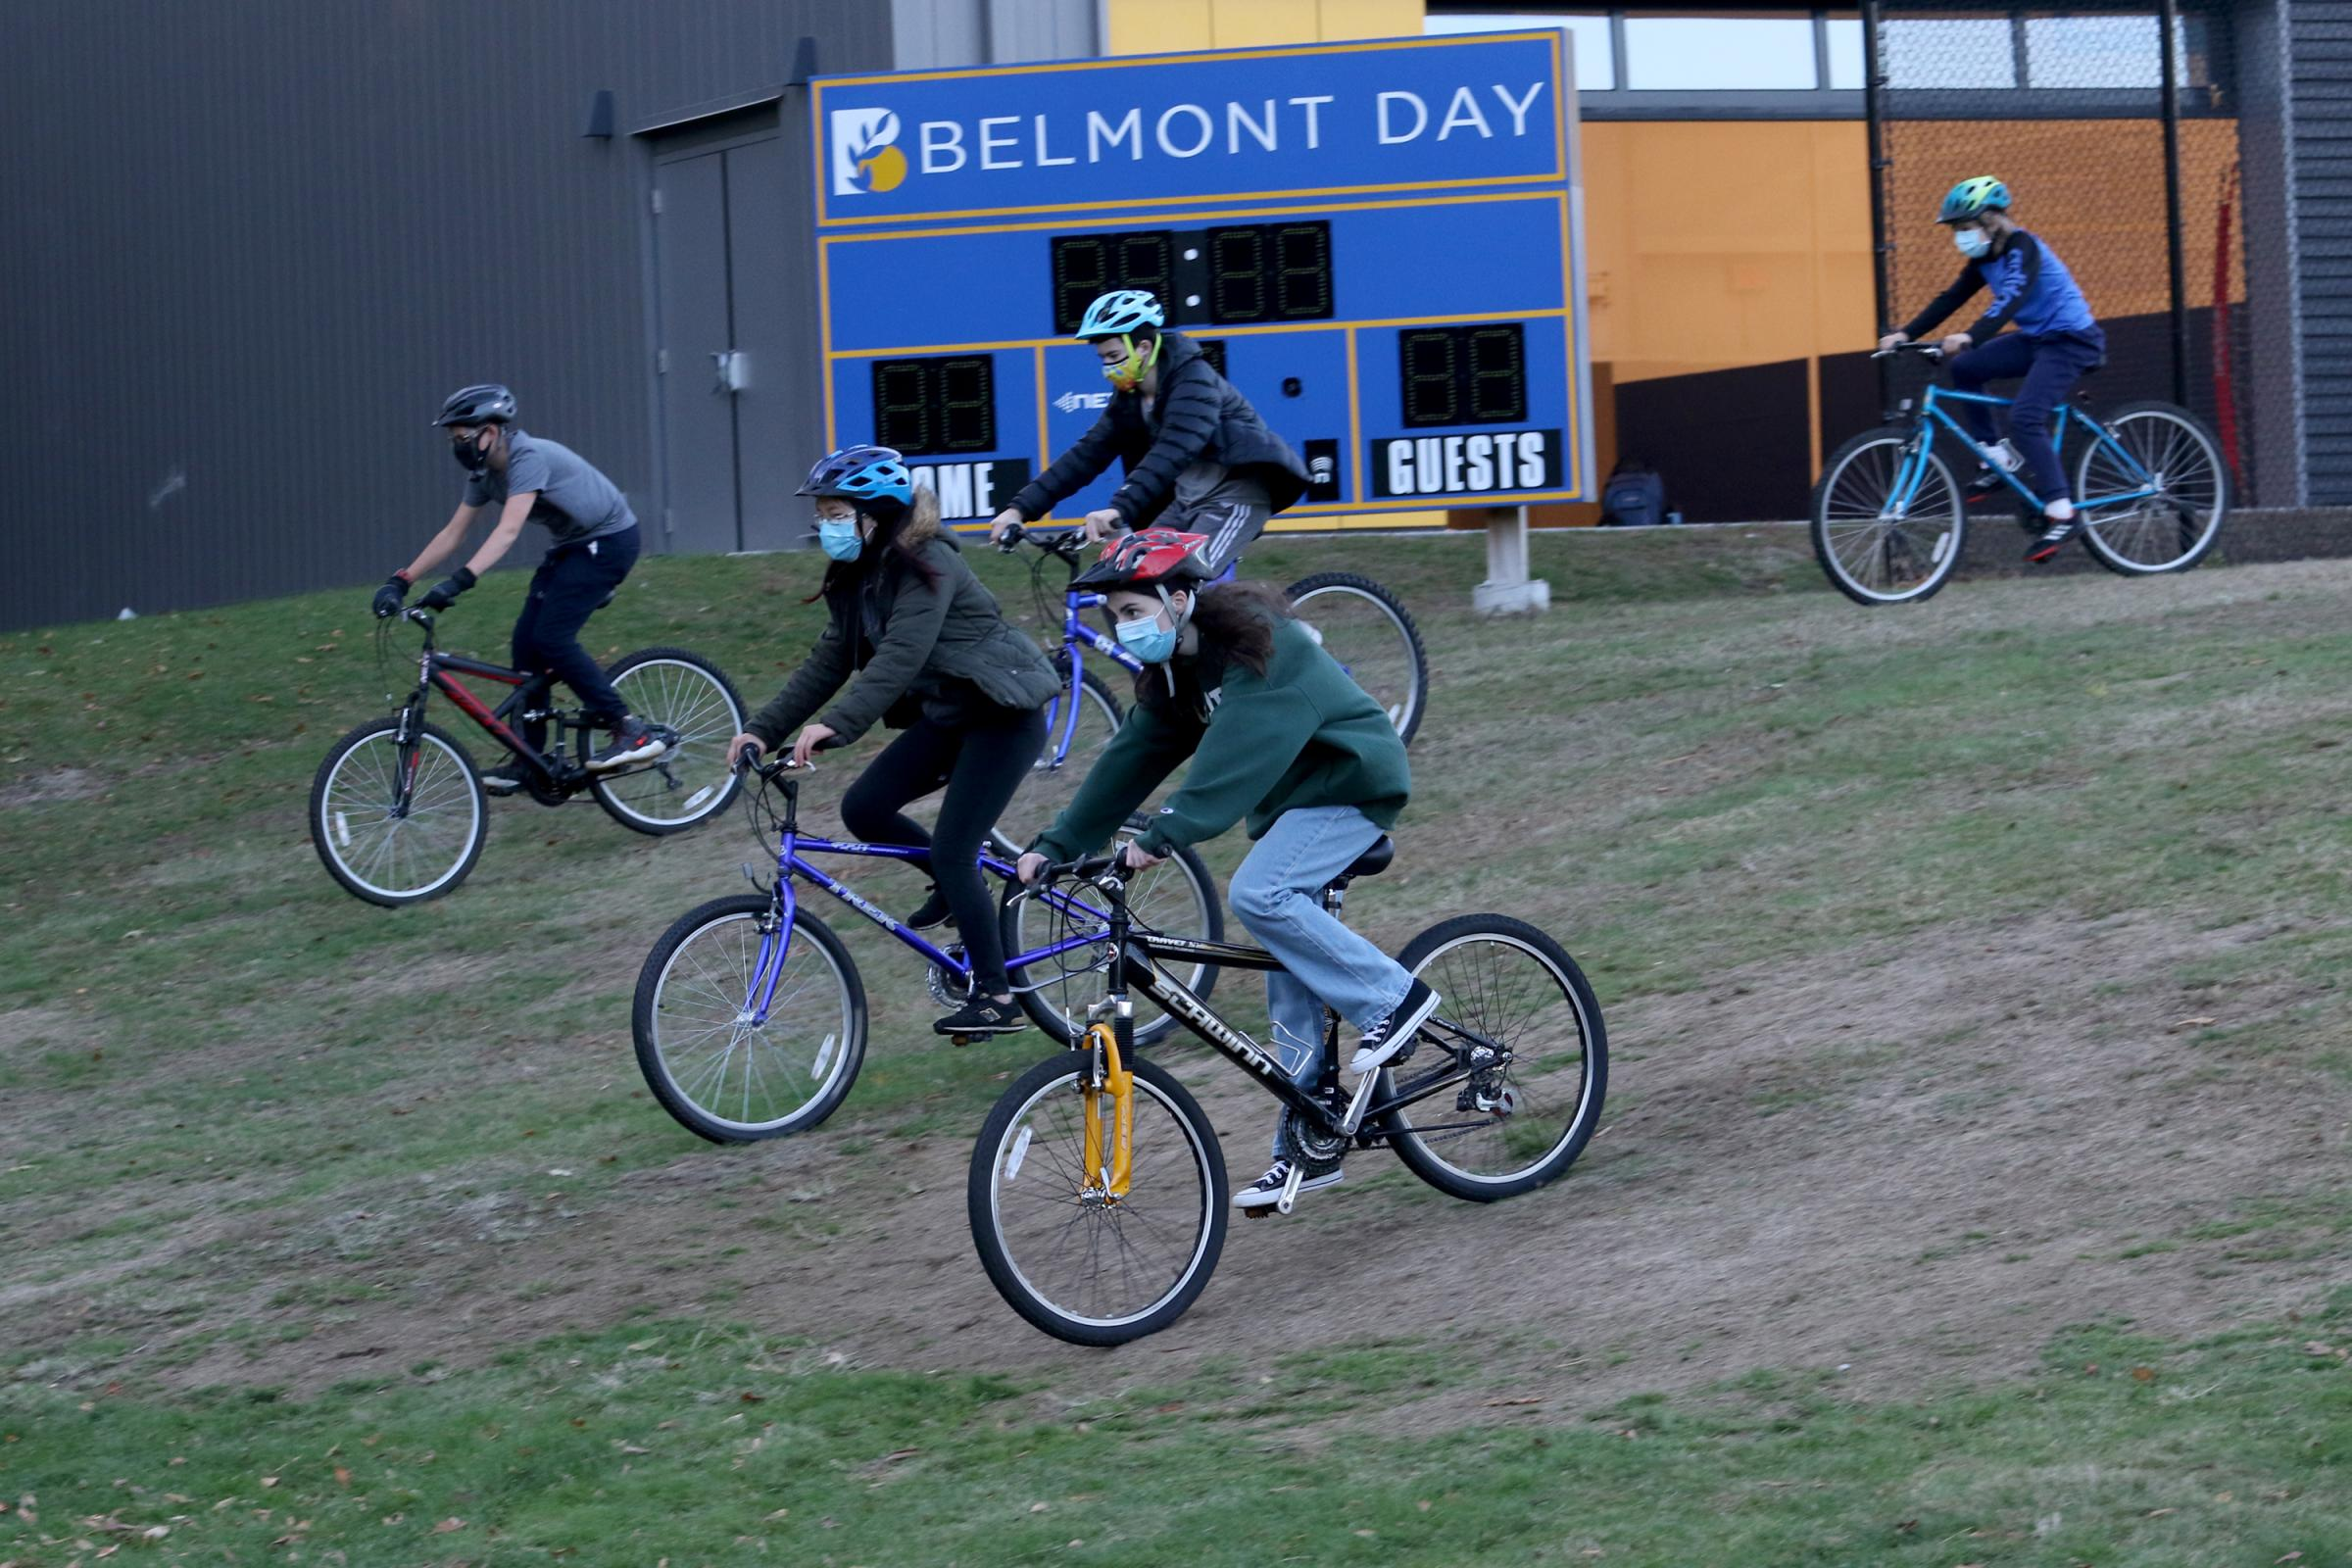 The outdoor adventure group takes to the trail bikes